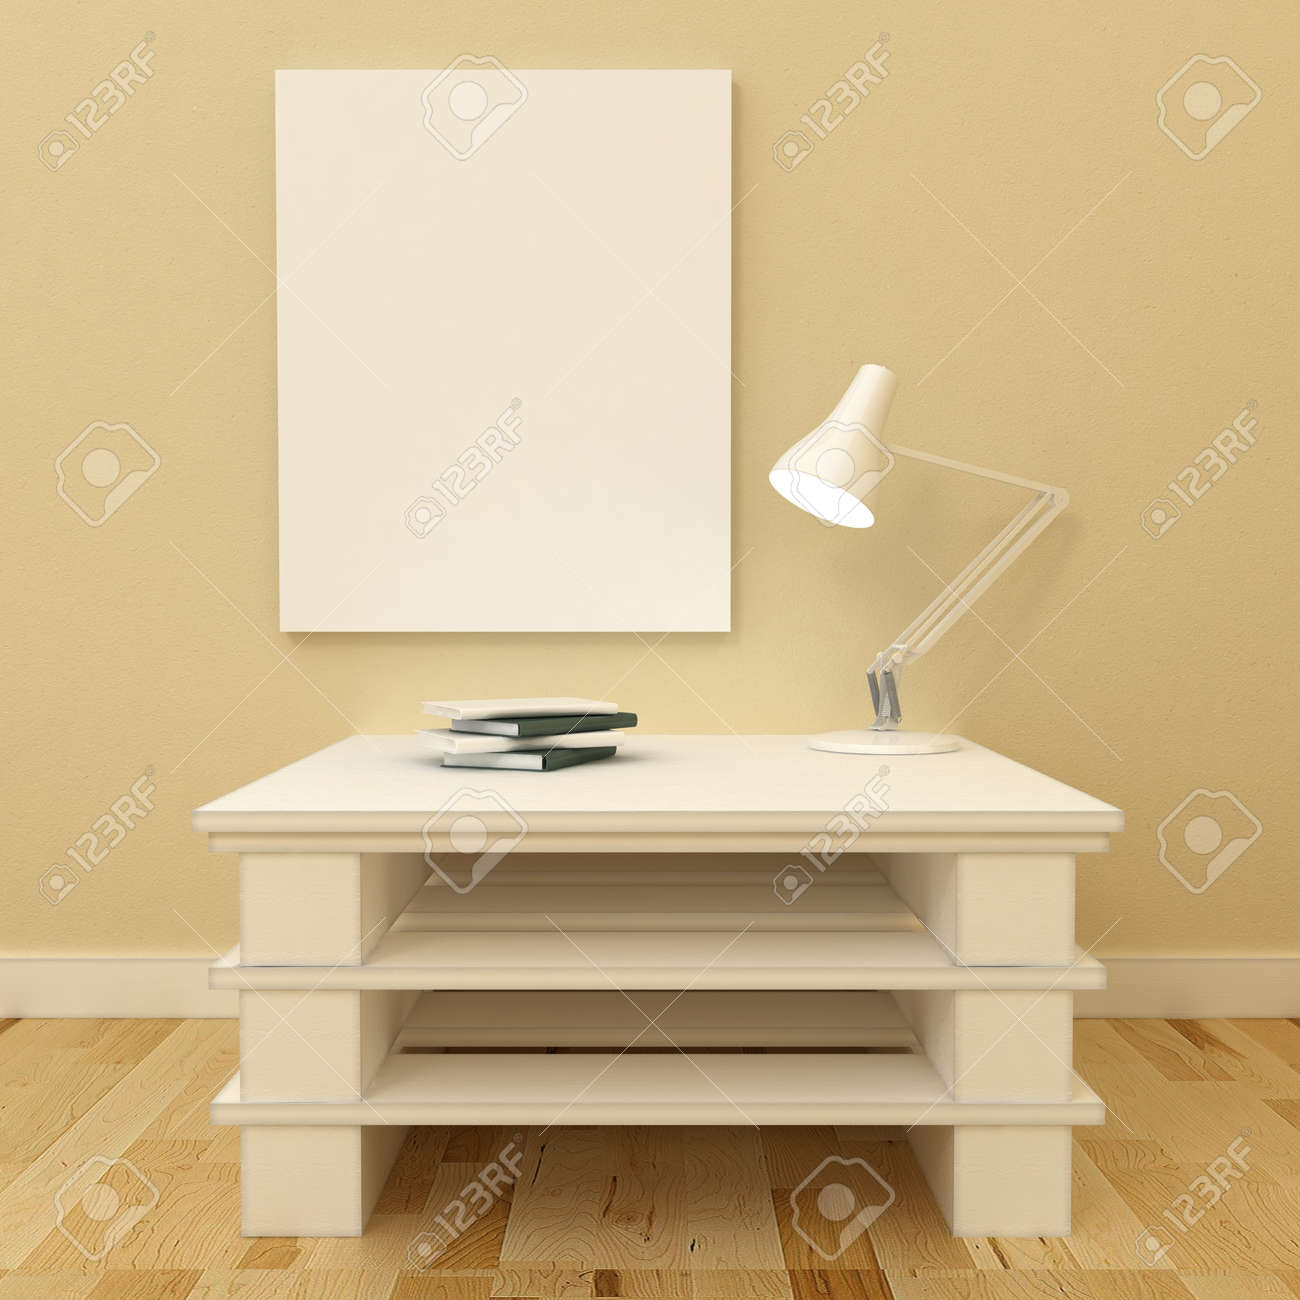 Empty Picture Frames In Classic Interior Background On The ...